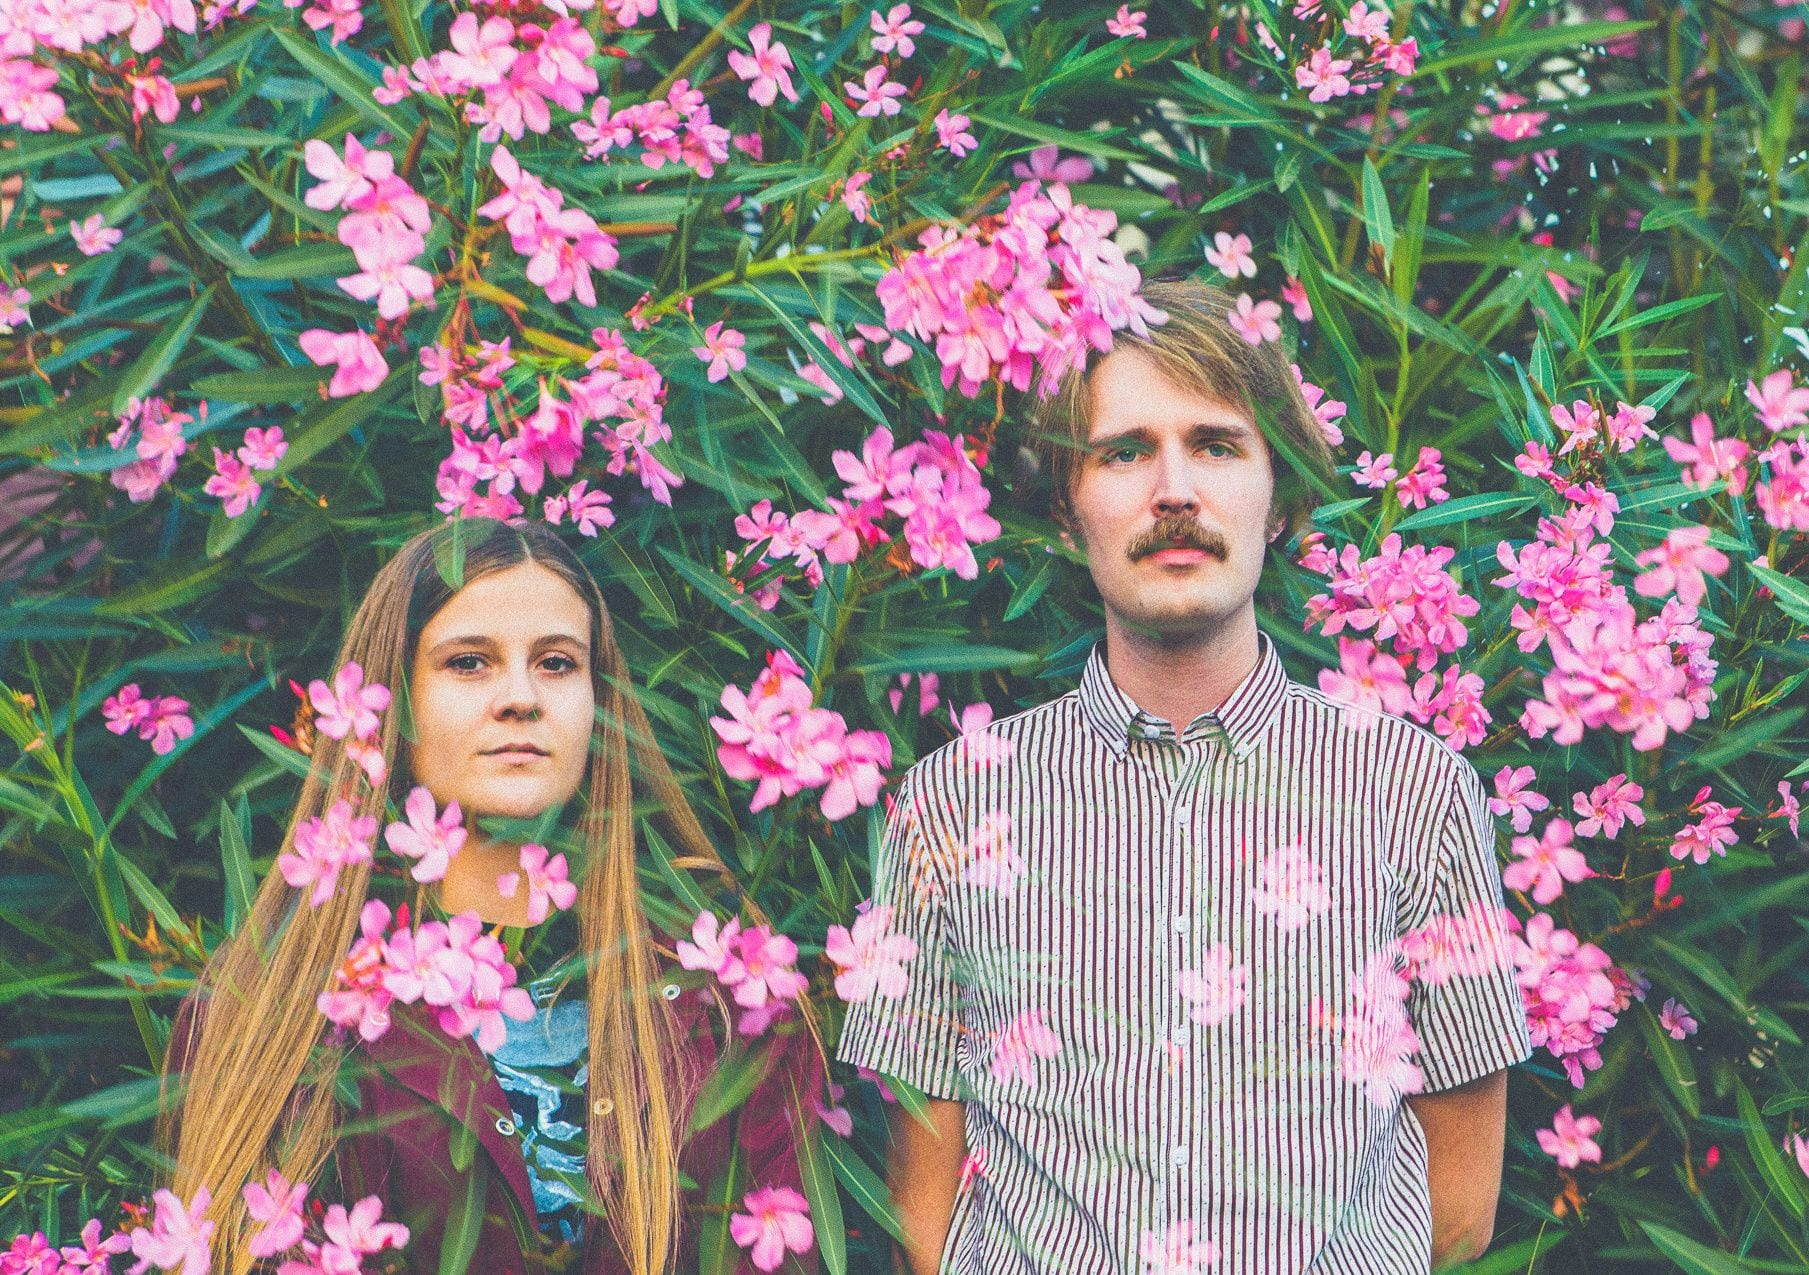 Kacy & Clayton's 'Carrying On' Is a Profound Meditation on Geographic Connection